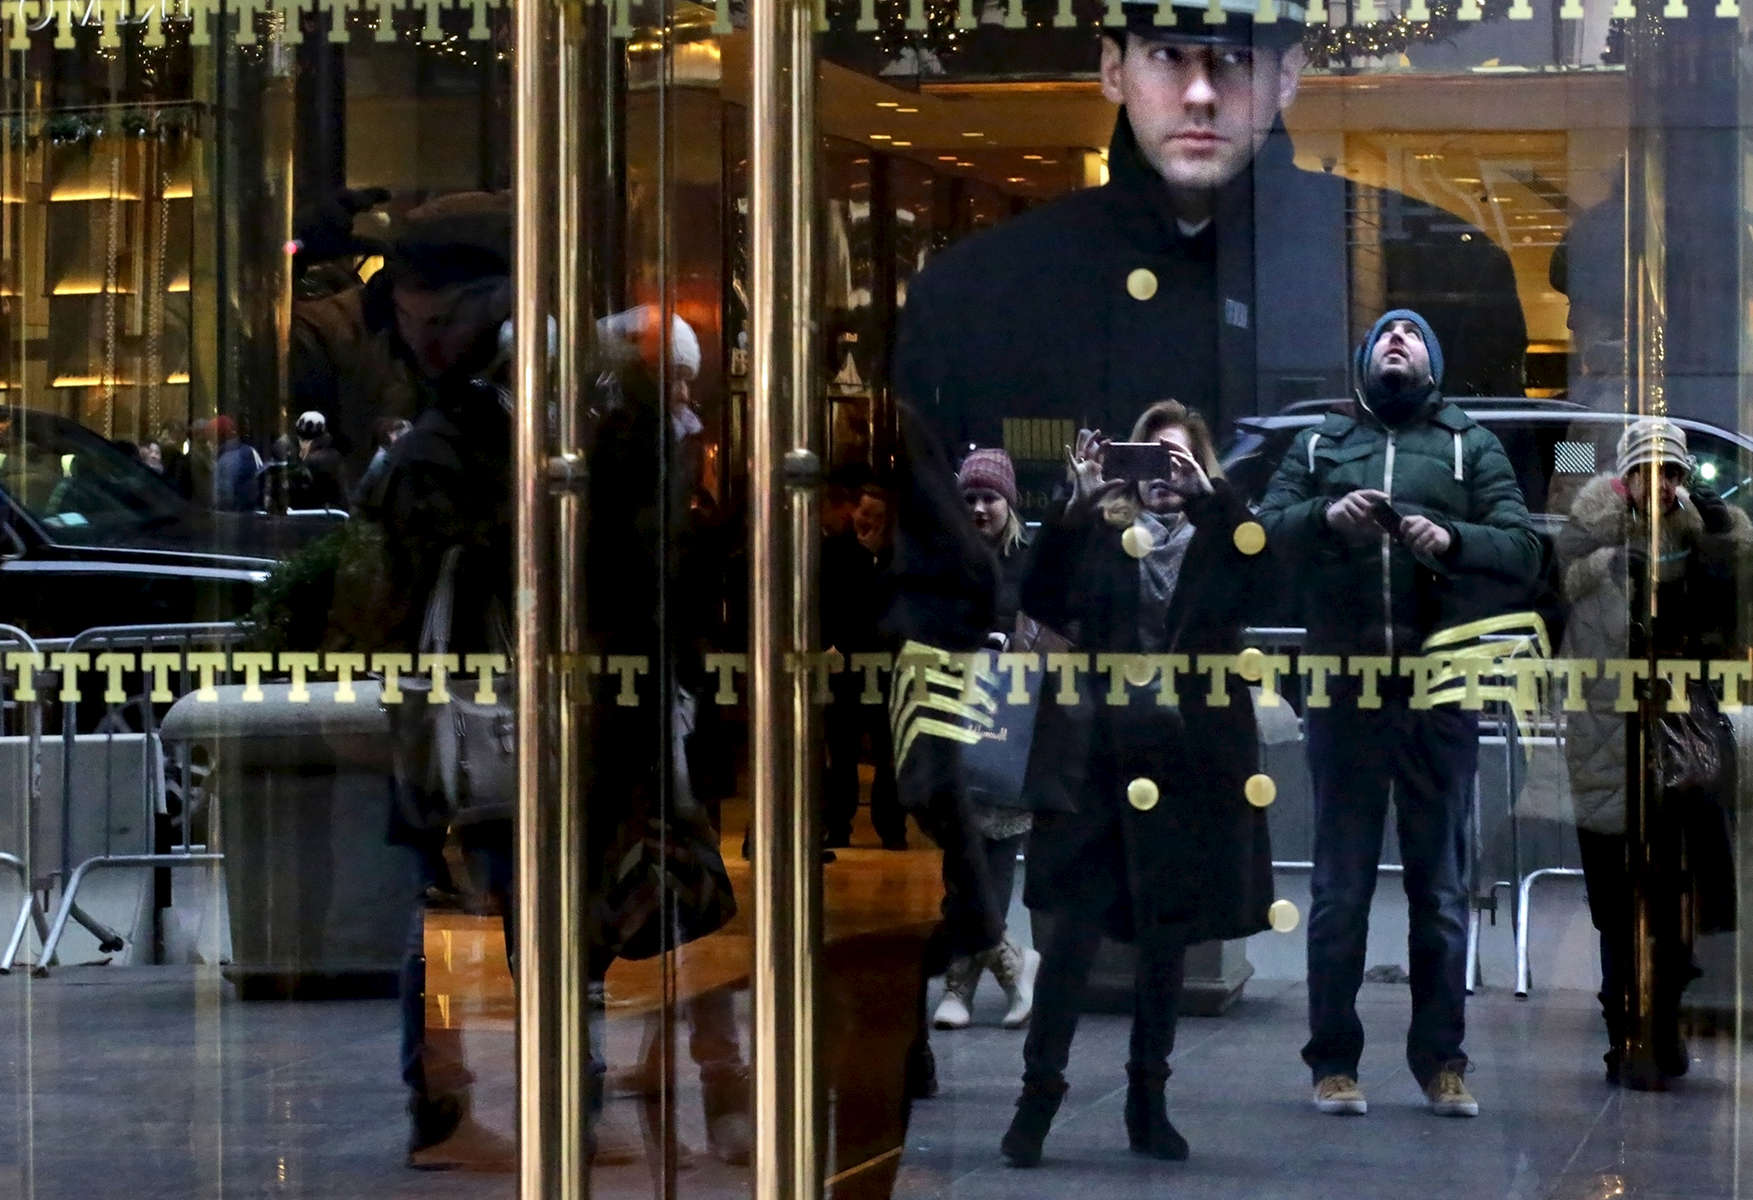 David Skellington,  doorman of Trump Tower of eight years, the current residence of Republican President elect Donald Trump, looks out onto passersby photographing the building in New York, NY on December 15, 2016. On crowds constantly recording Trump Tower, Skellington said: {quote}It's interesting, you see a lot of people, it's history. But this could be awkward, so many people taking pictures. I'd rather be behind the camera. My family and friends are always seeing me on the news. Tourists say, 'you're famous.' {quote} -{quote}Trump Gawkers{quote} is a visceral look at what draws people to Trump Tower, through in-depth interviews and still photos - a project I started the day after the election. At first, I simply followed where my assignments sent me, but then found myself returning to the place on my own, unable to look away - and I wasn't alone. Hoards of people undertake the trek, bearing security and weather roadblocks, to stare, gawk, absorb, record. The magnetism to Trump Tower (and by extension, to the man in the tower,) manifests in the sheer numbers of daily visitors, as well as in the fascination etched across their faces. Upon first look, the time so many spend there seems like sport and amusement, but underneath upturned eyes and selfie smiles prevails an undercurrent of anxiety - and not just for those who didn't want Trump in the Oval Office. Some of the electorate that voted against Hillary is now unsure for which version of Trump they voted. People's upward gazes, no matter their political views, seek answers: How could this happen? Or now that it has, what will it mean?